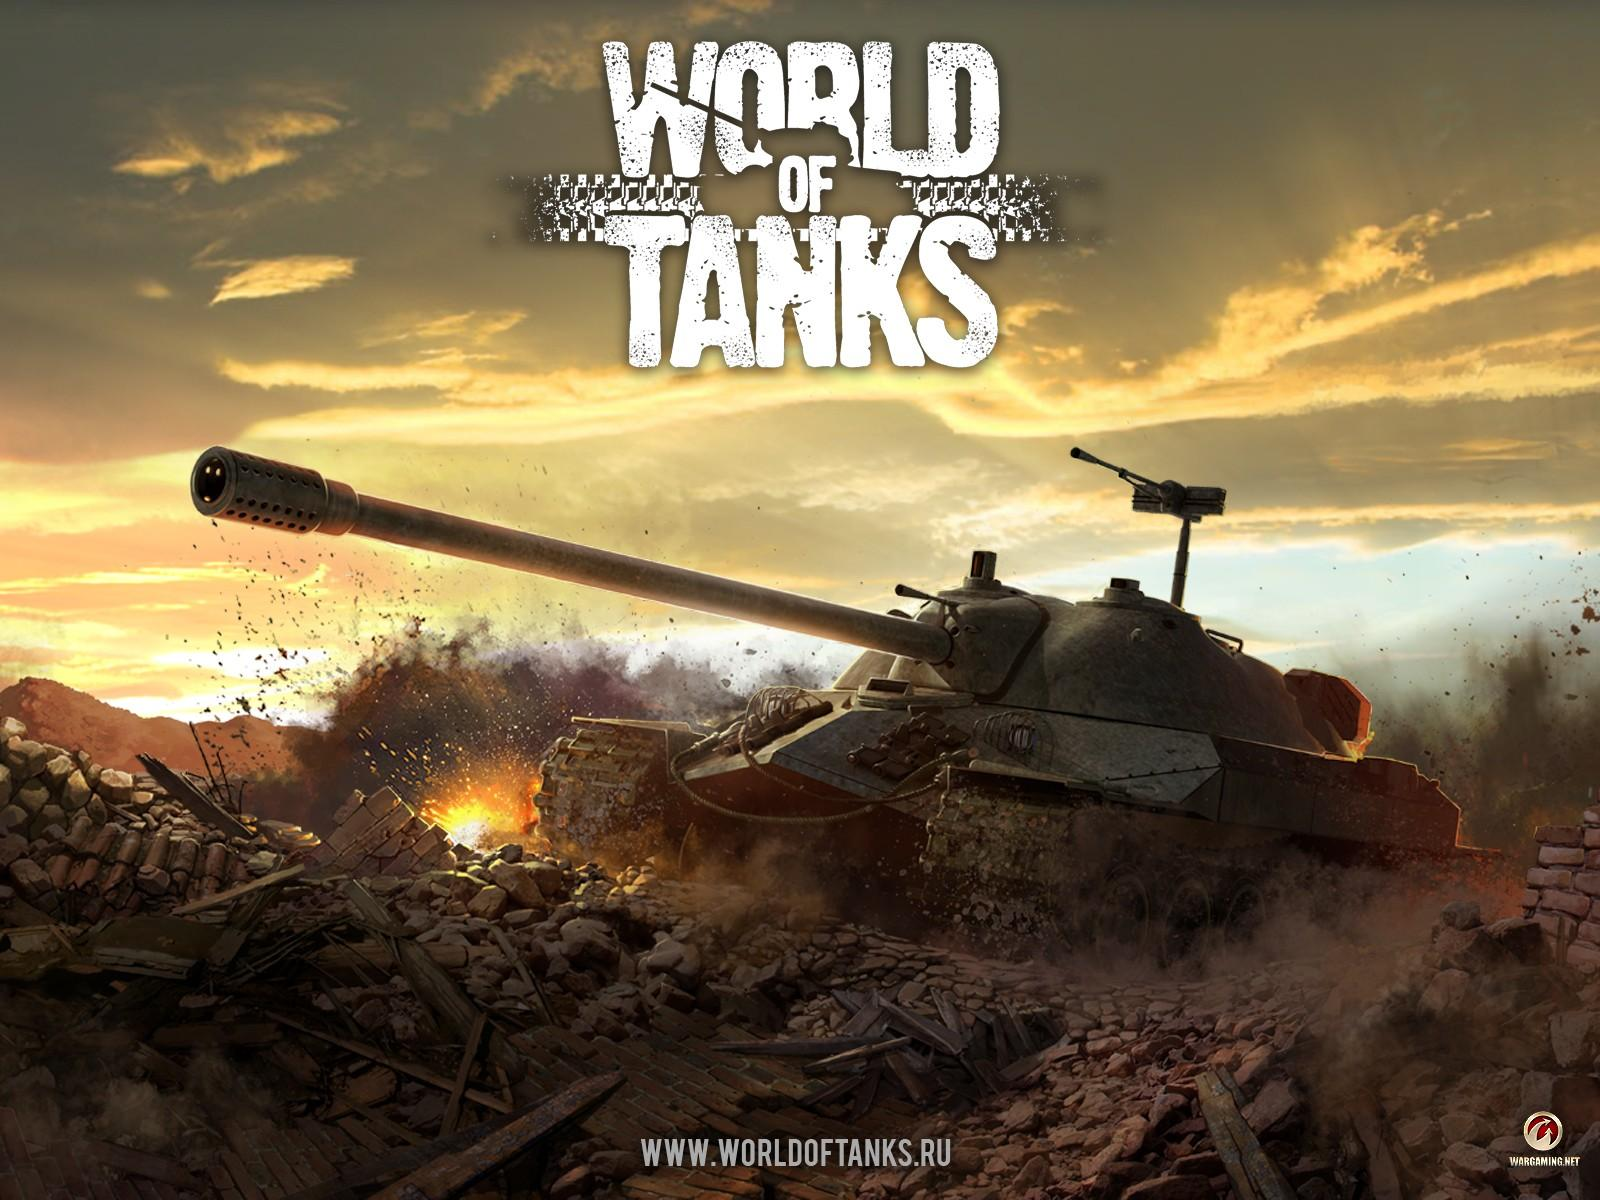 Обои World of Tanks 1600x1200